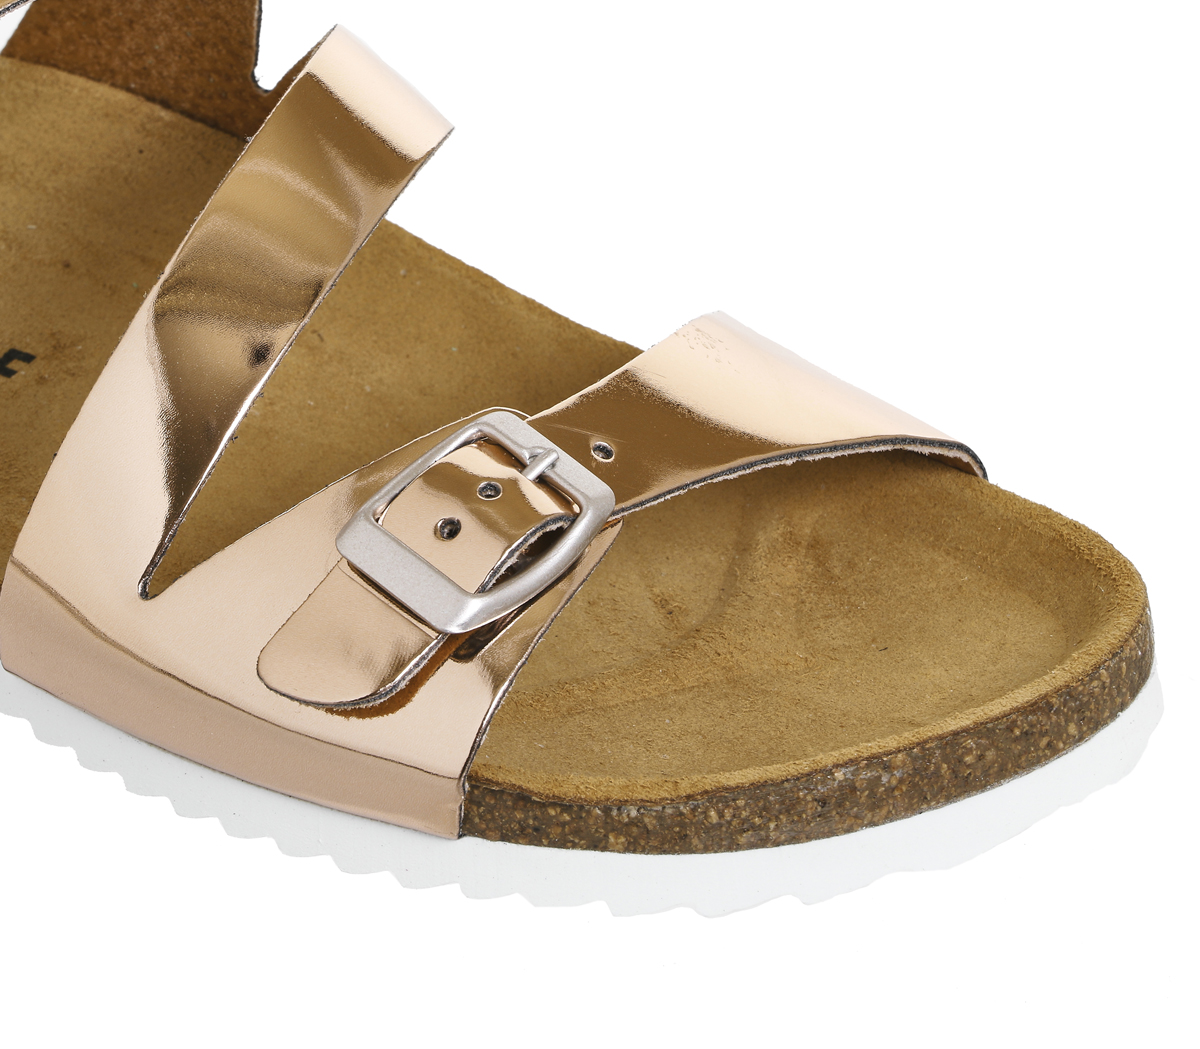 999e9fa12e11 Womens OFFICE Bounty Cross Strap Footbed Rose Gold Sandals UK 6. About this  product. Picture 1 of 4  Picture 2 of 4  Picture 3 of 4  Picture 4 of 4